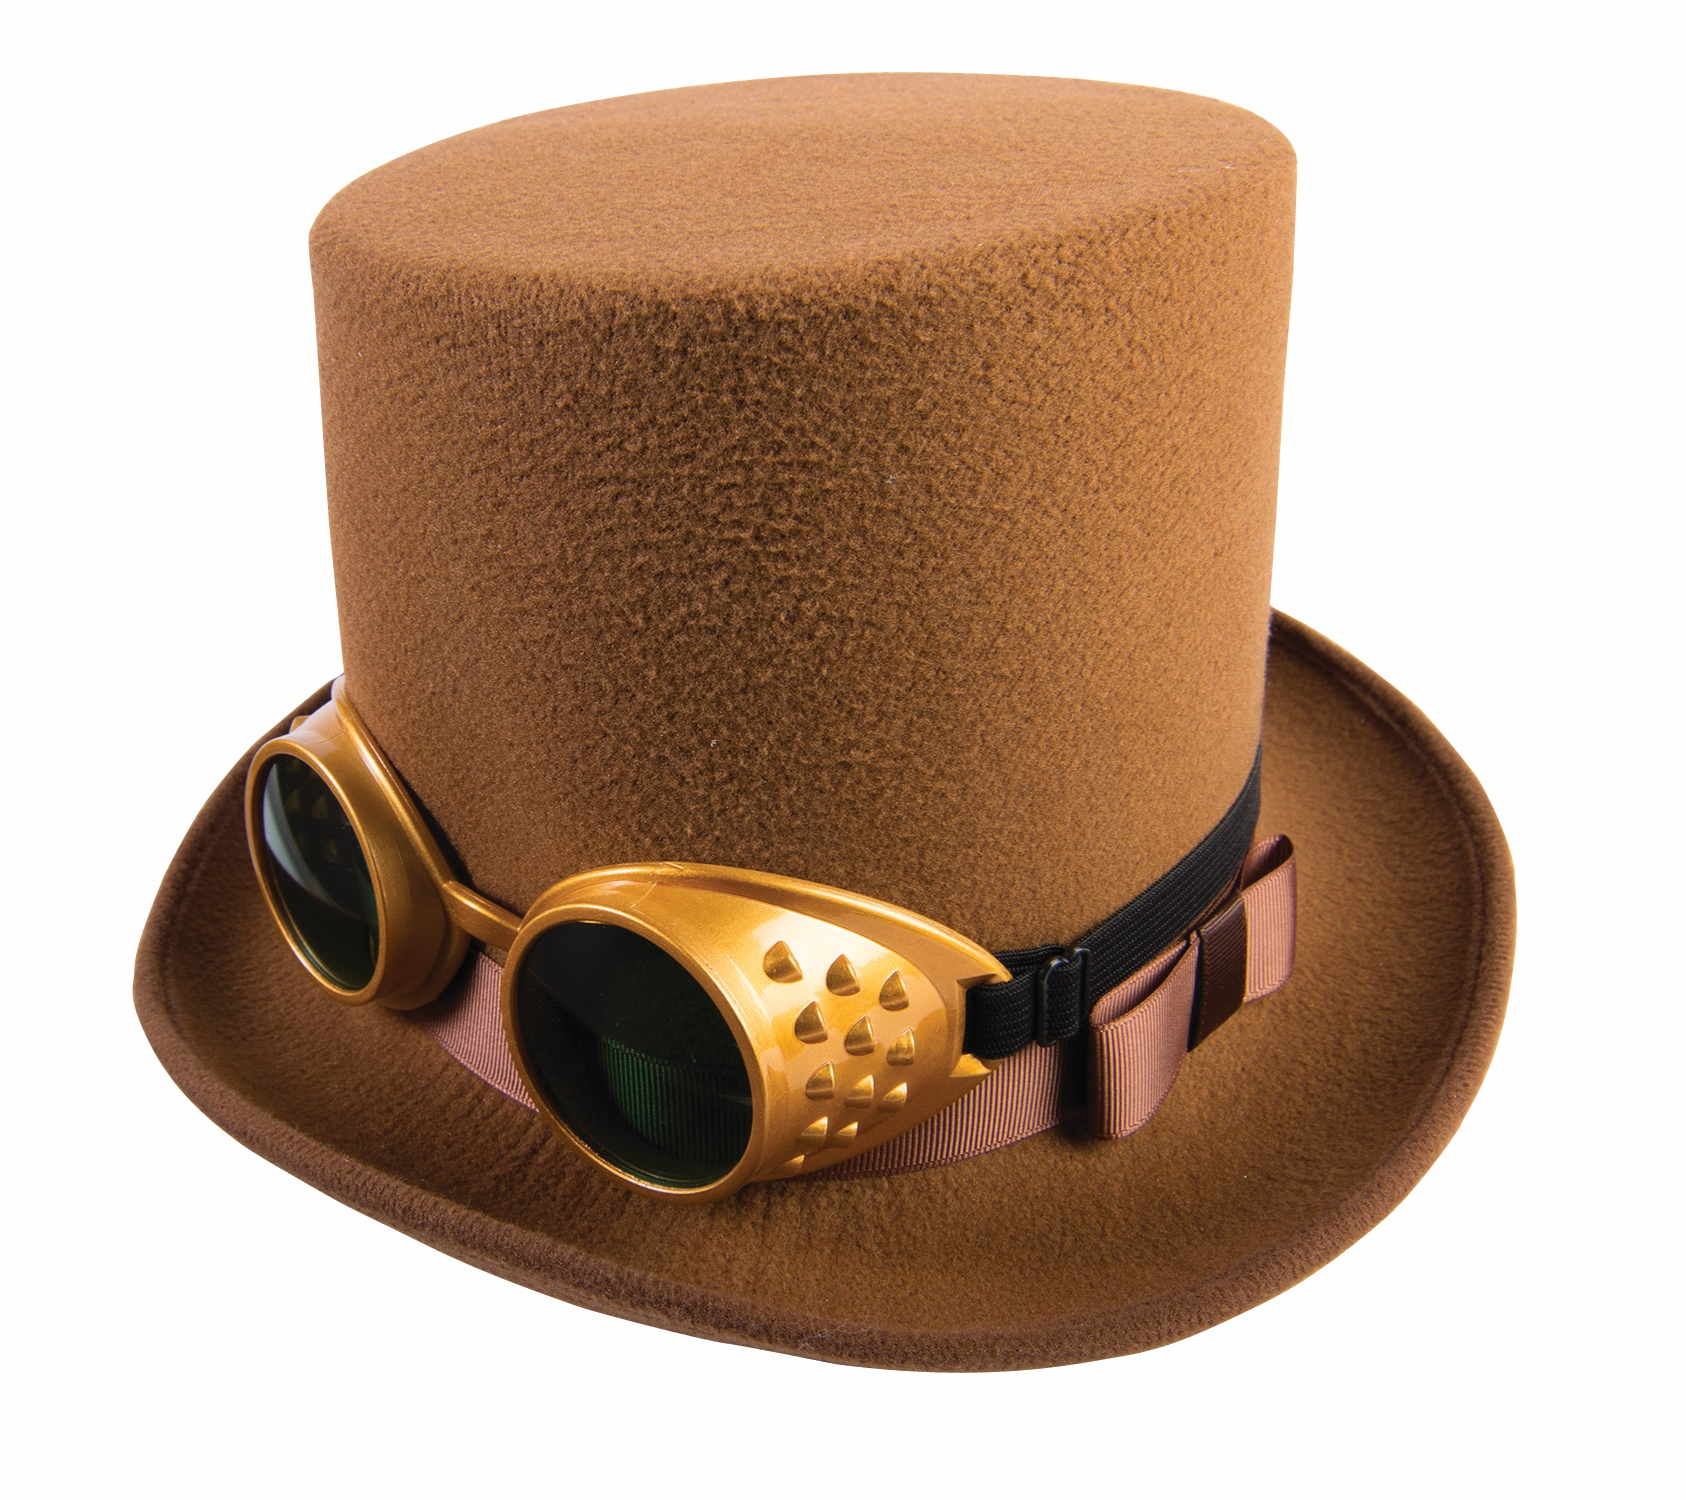 steam punk hat with goggles and ribbon